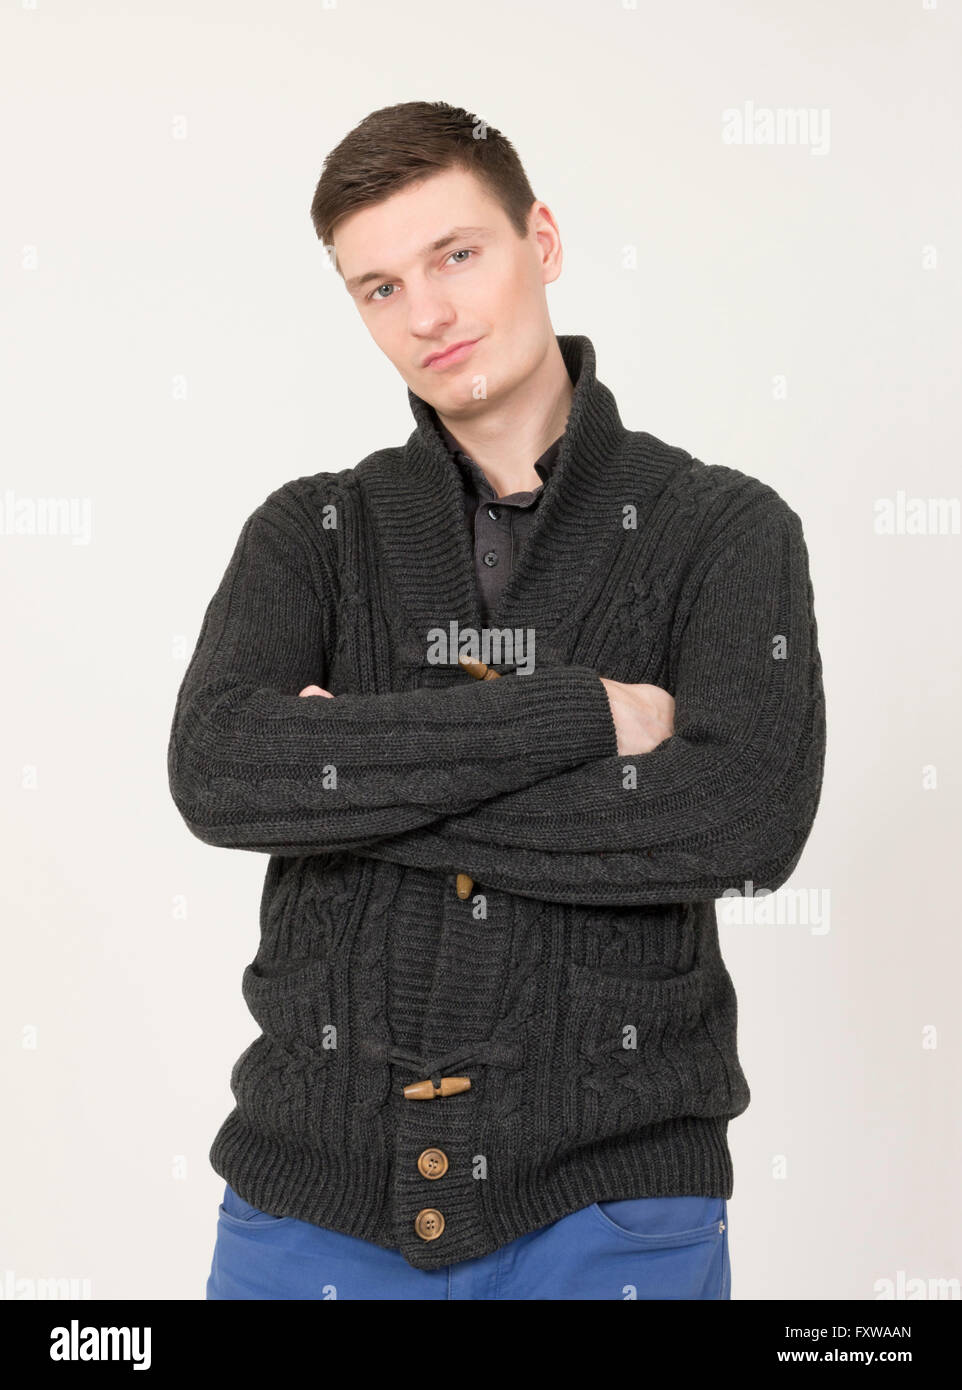 Handsome young man with microphone - Stock Image